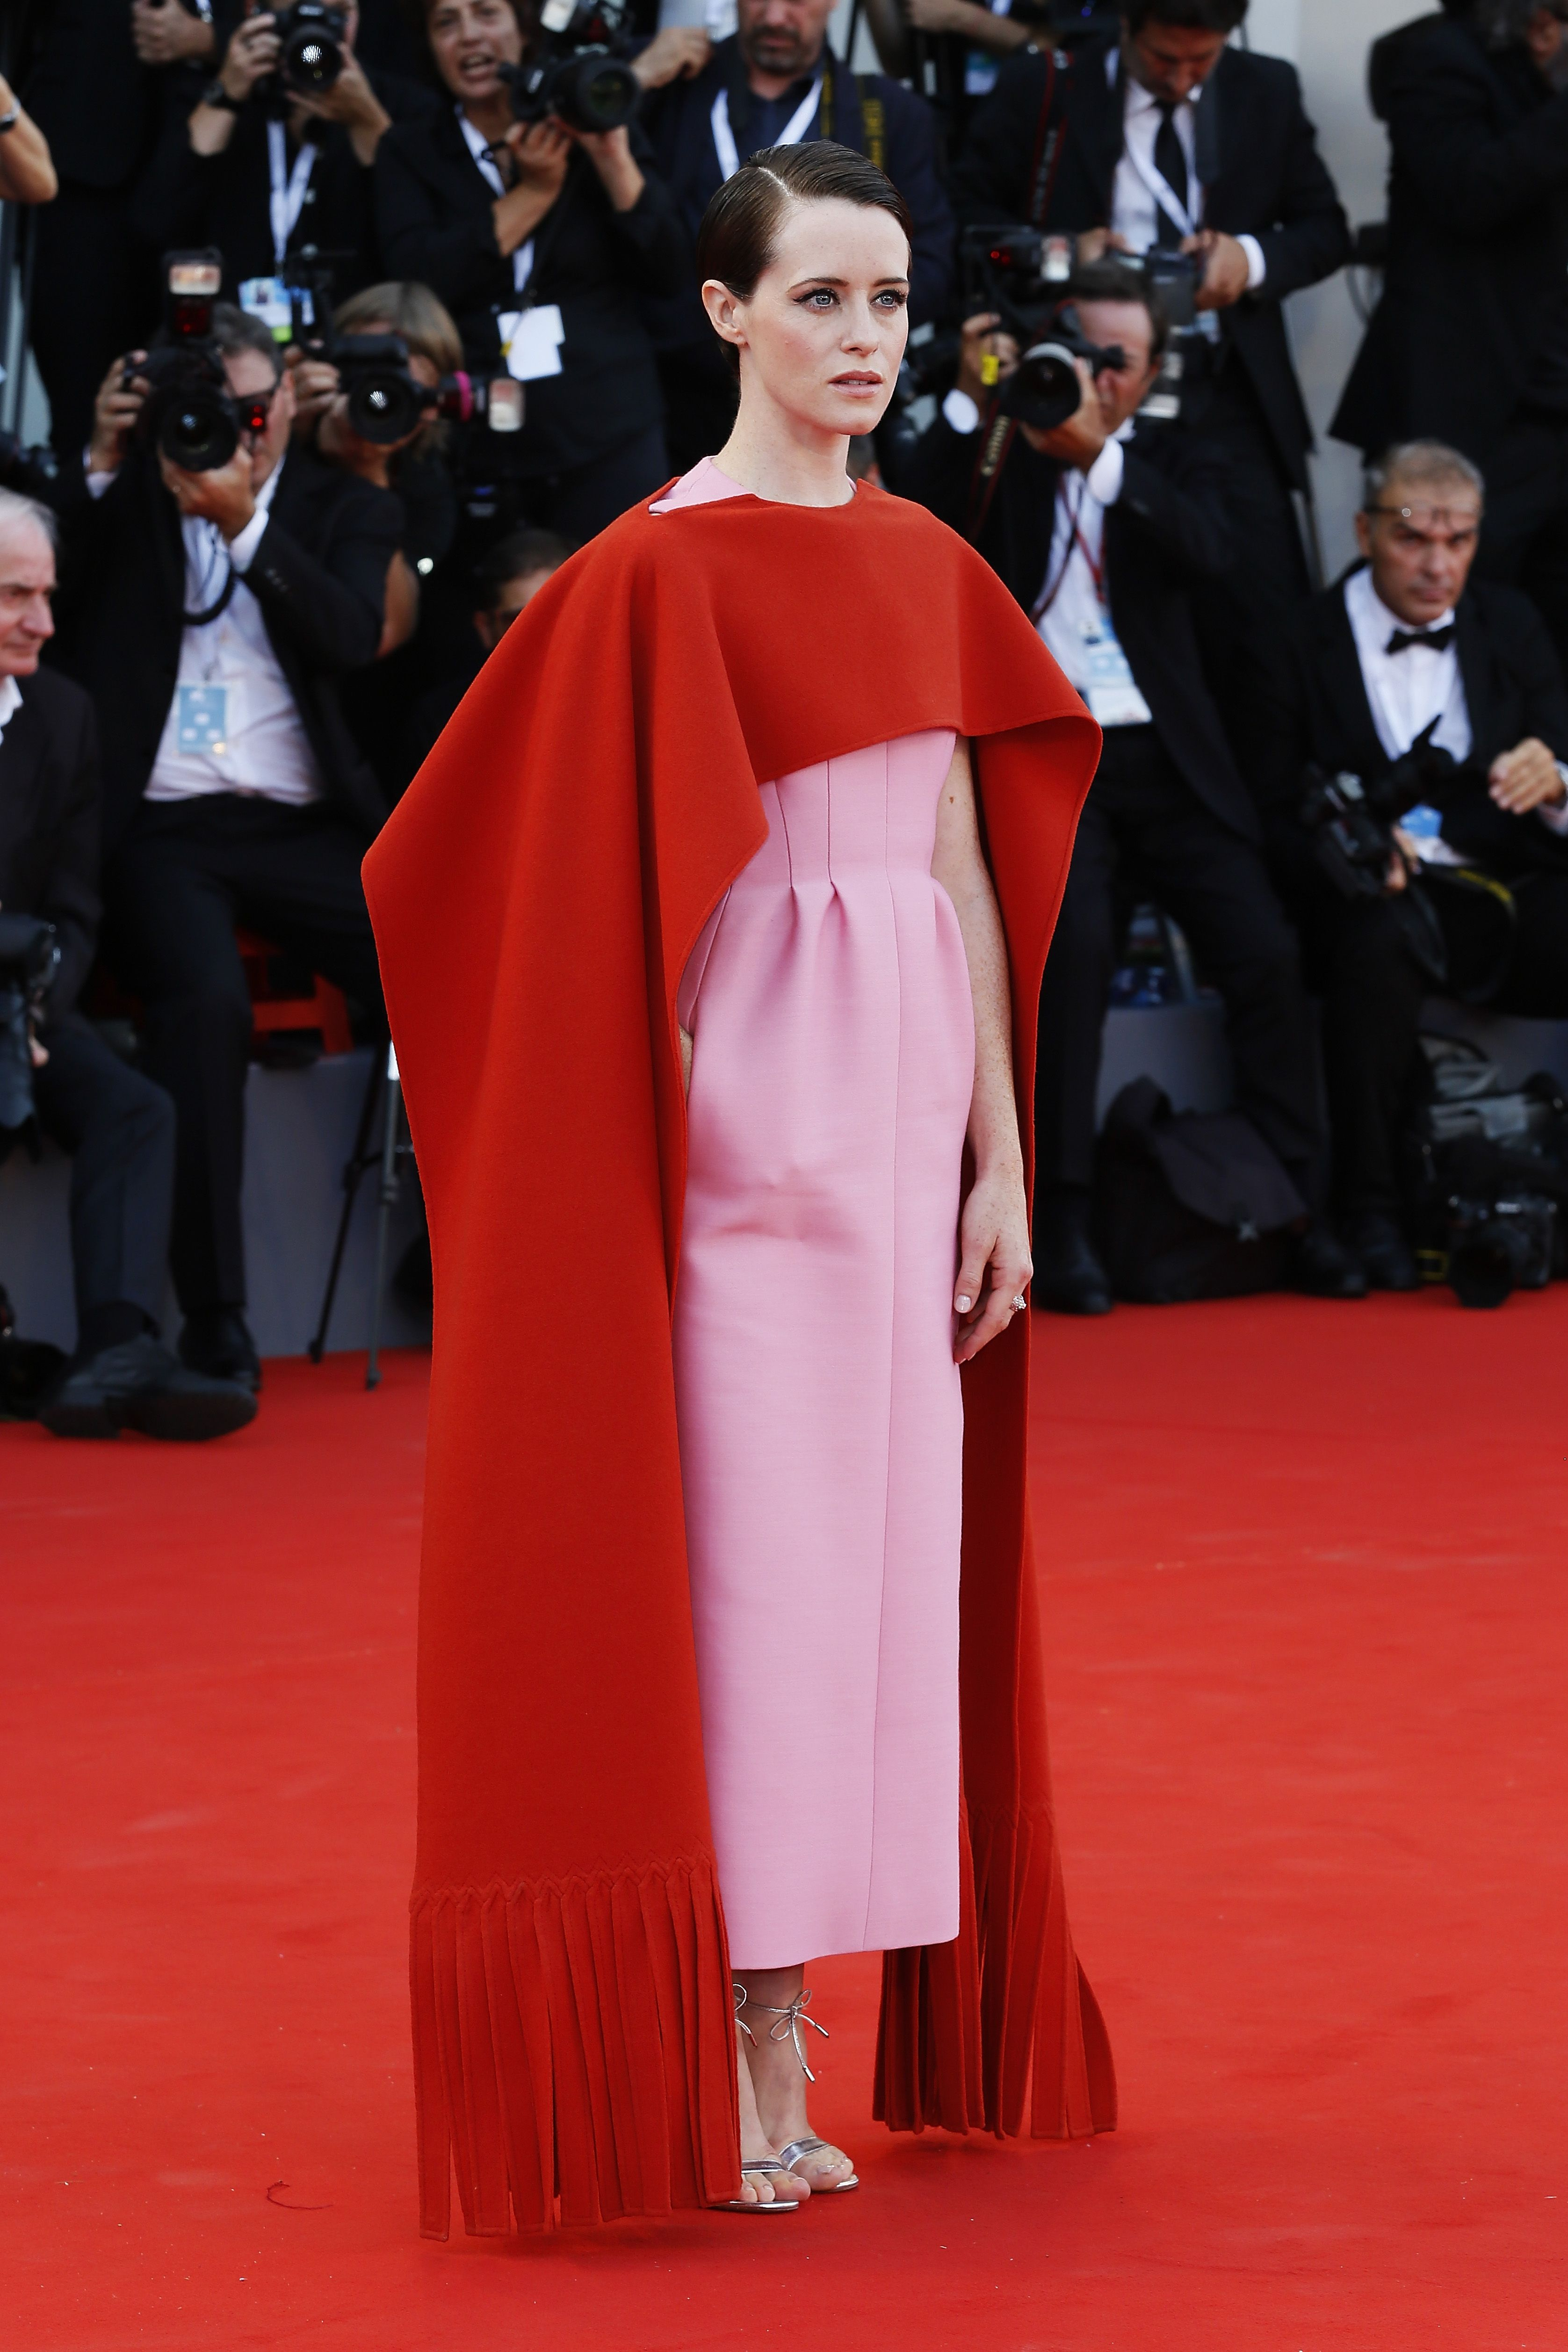 The Crown star stunned on the red carpet at the Venice Film Festival in a structured pink Valentino gown with a red fringe cape.